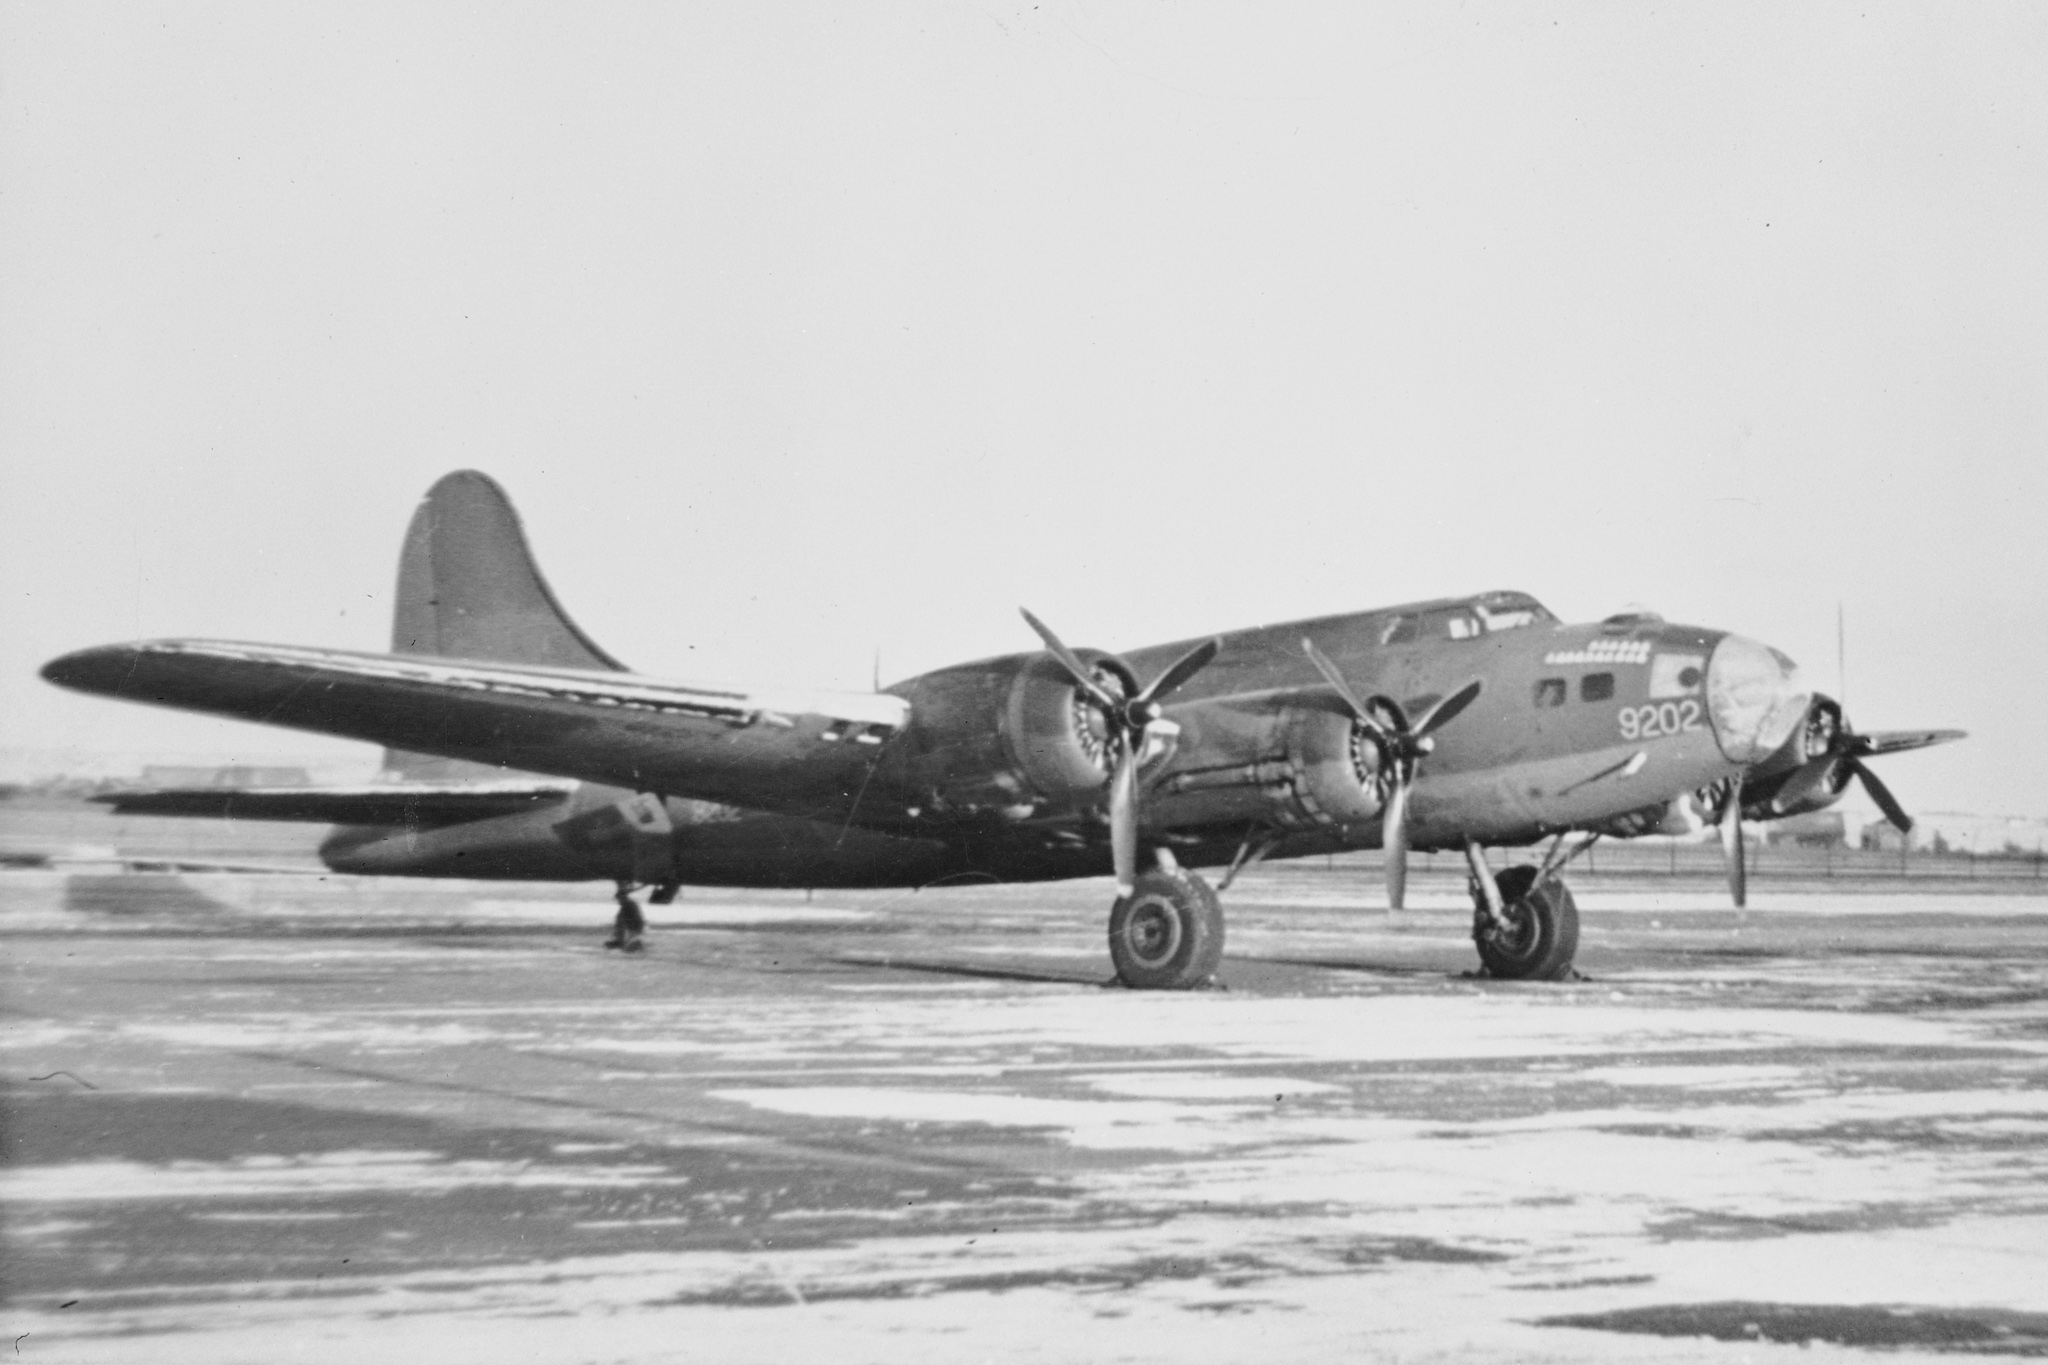 The Boeing B-17 Flying Fortress aircraft were bombers by design, but the RCAF versions—three B-17E models and three B-17F models—flew without armament since they were purely used as transport aircraft in Canadian service. PHOTO: DND Archives, RE64-957